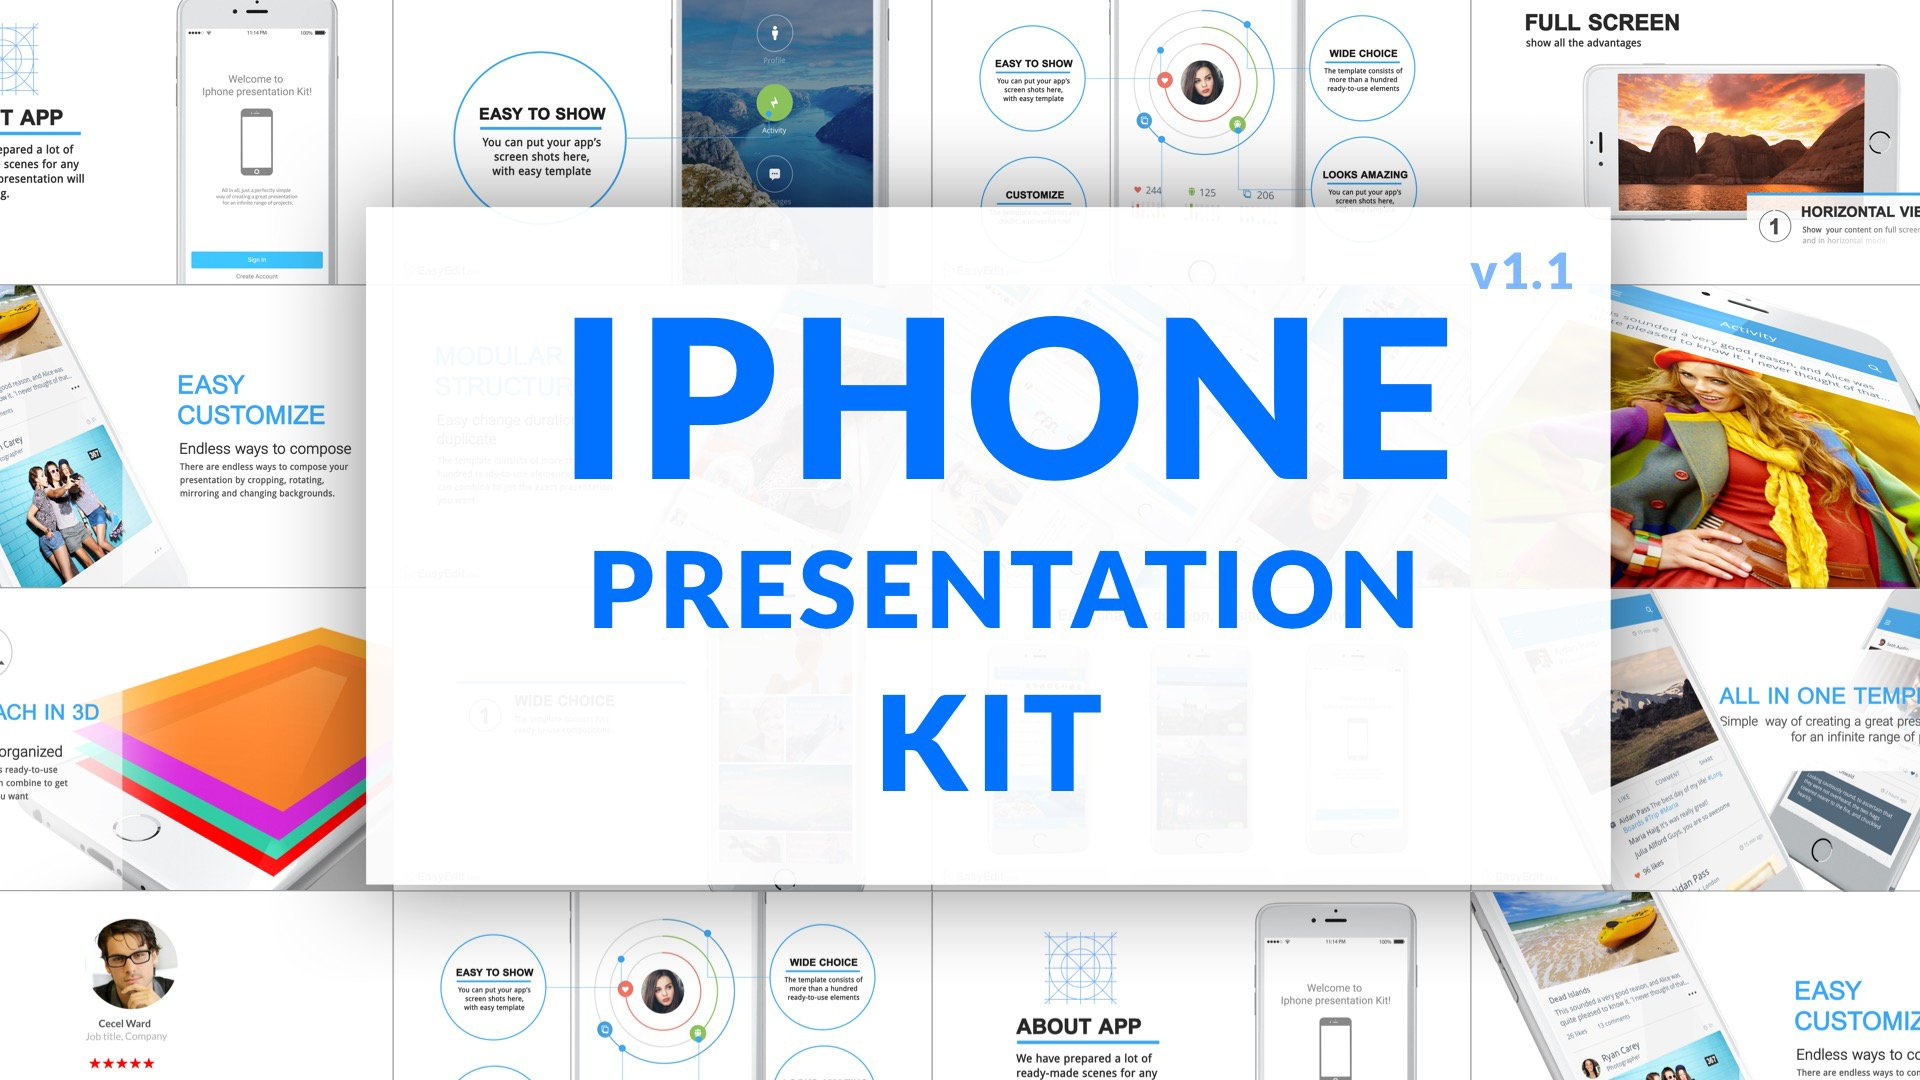 iphone presentation kit cover